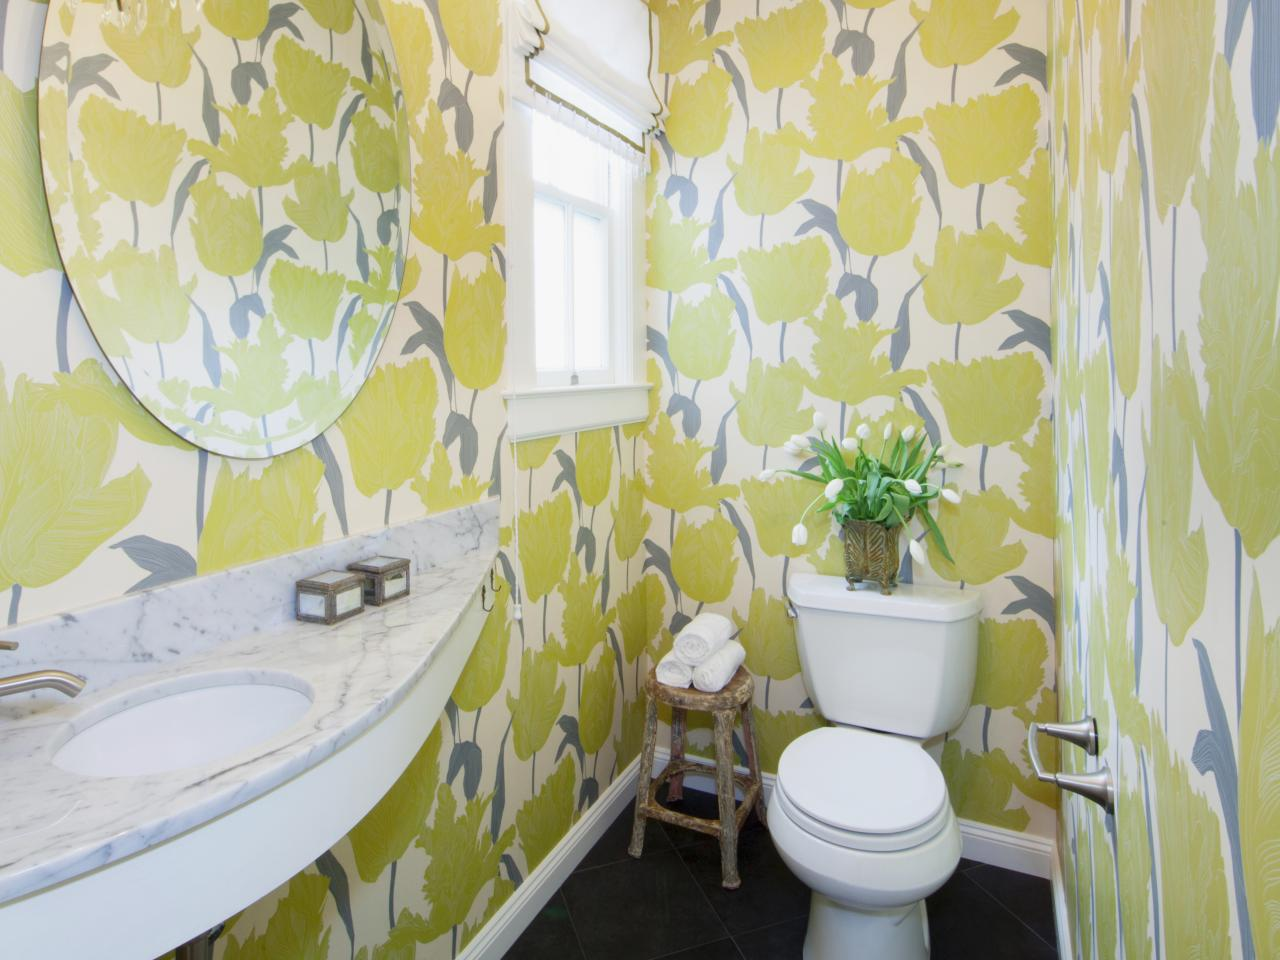 ... Remodel: DIY or Hire a Pro? | DIY Network Blog: Made + Remade | DIY